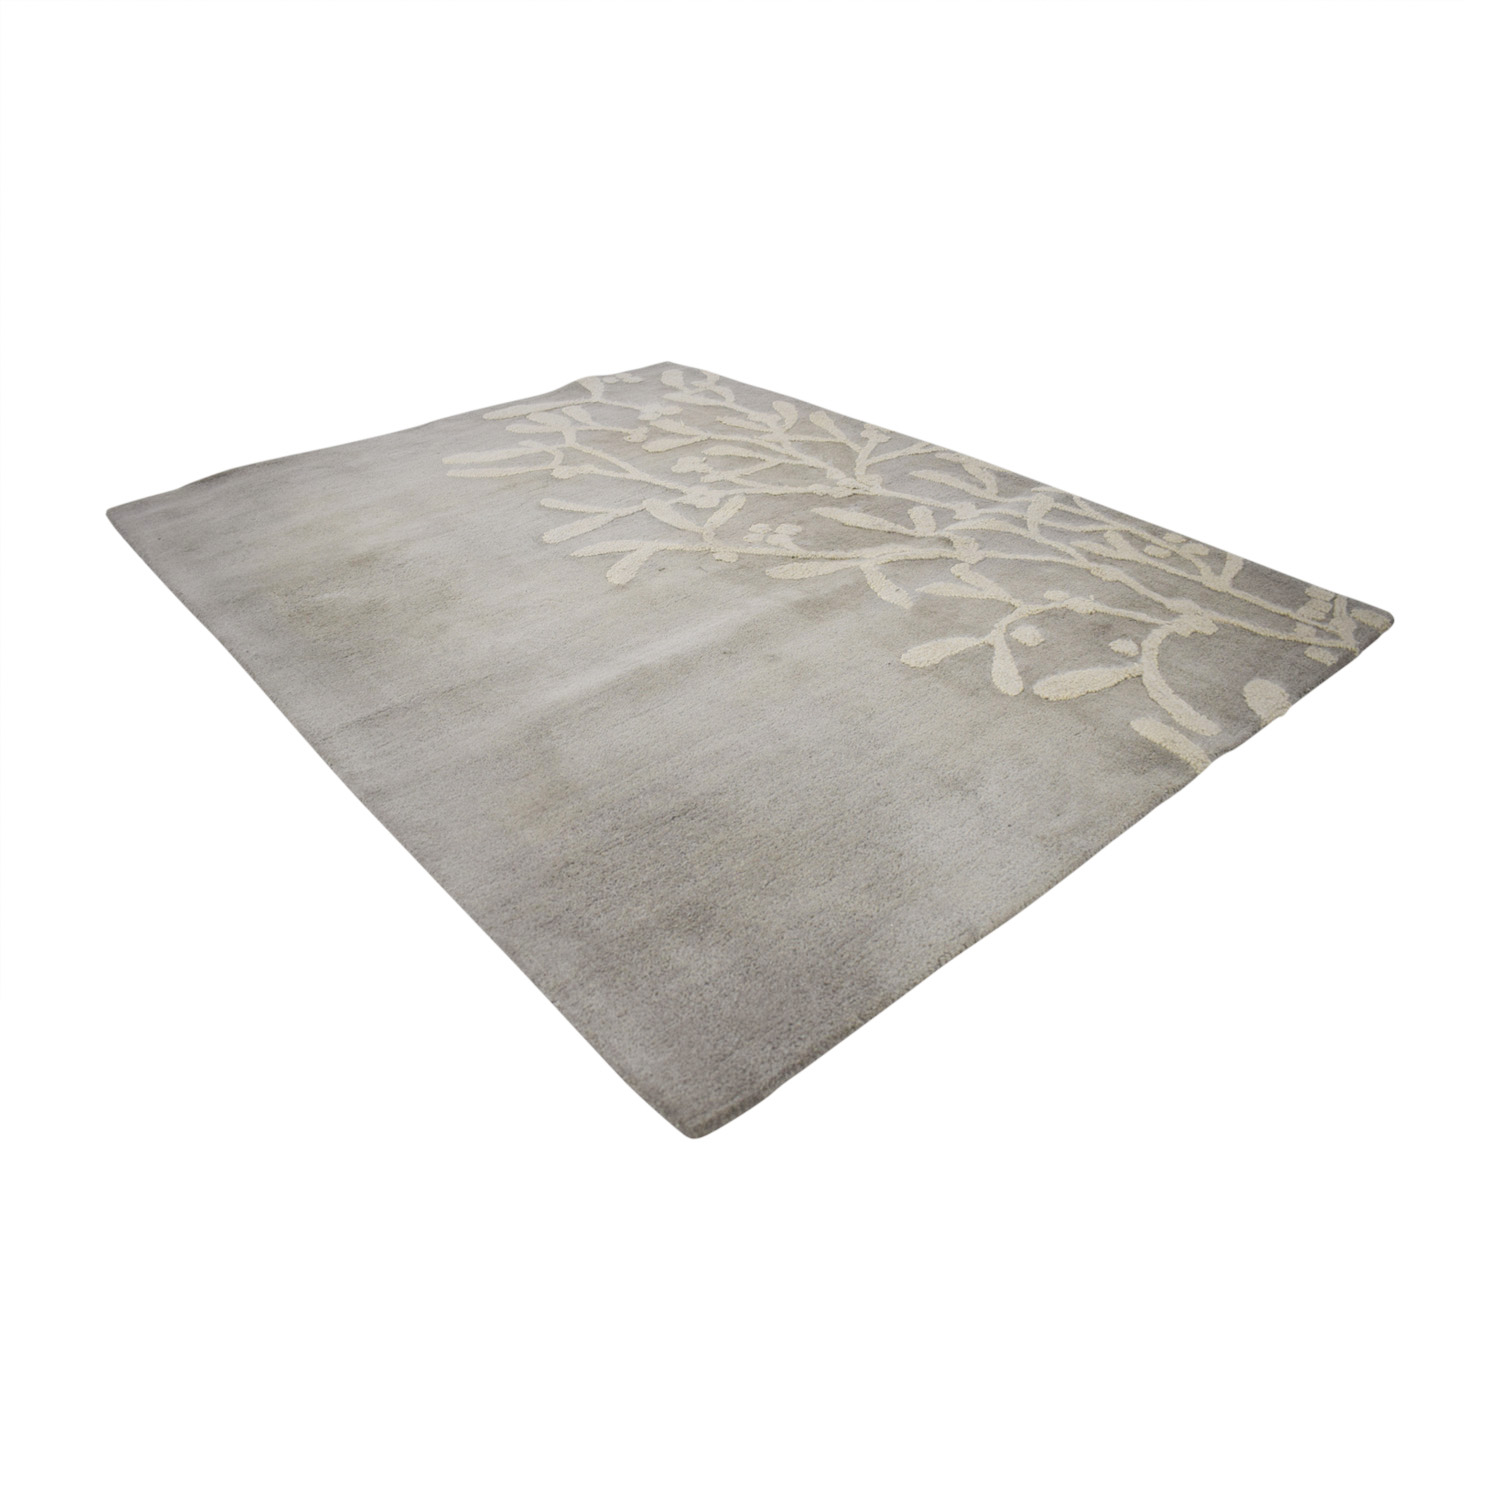 buy Next Next Grey and White Rug online